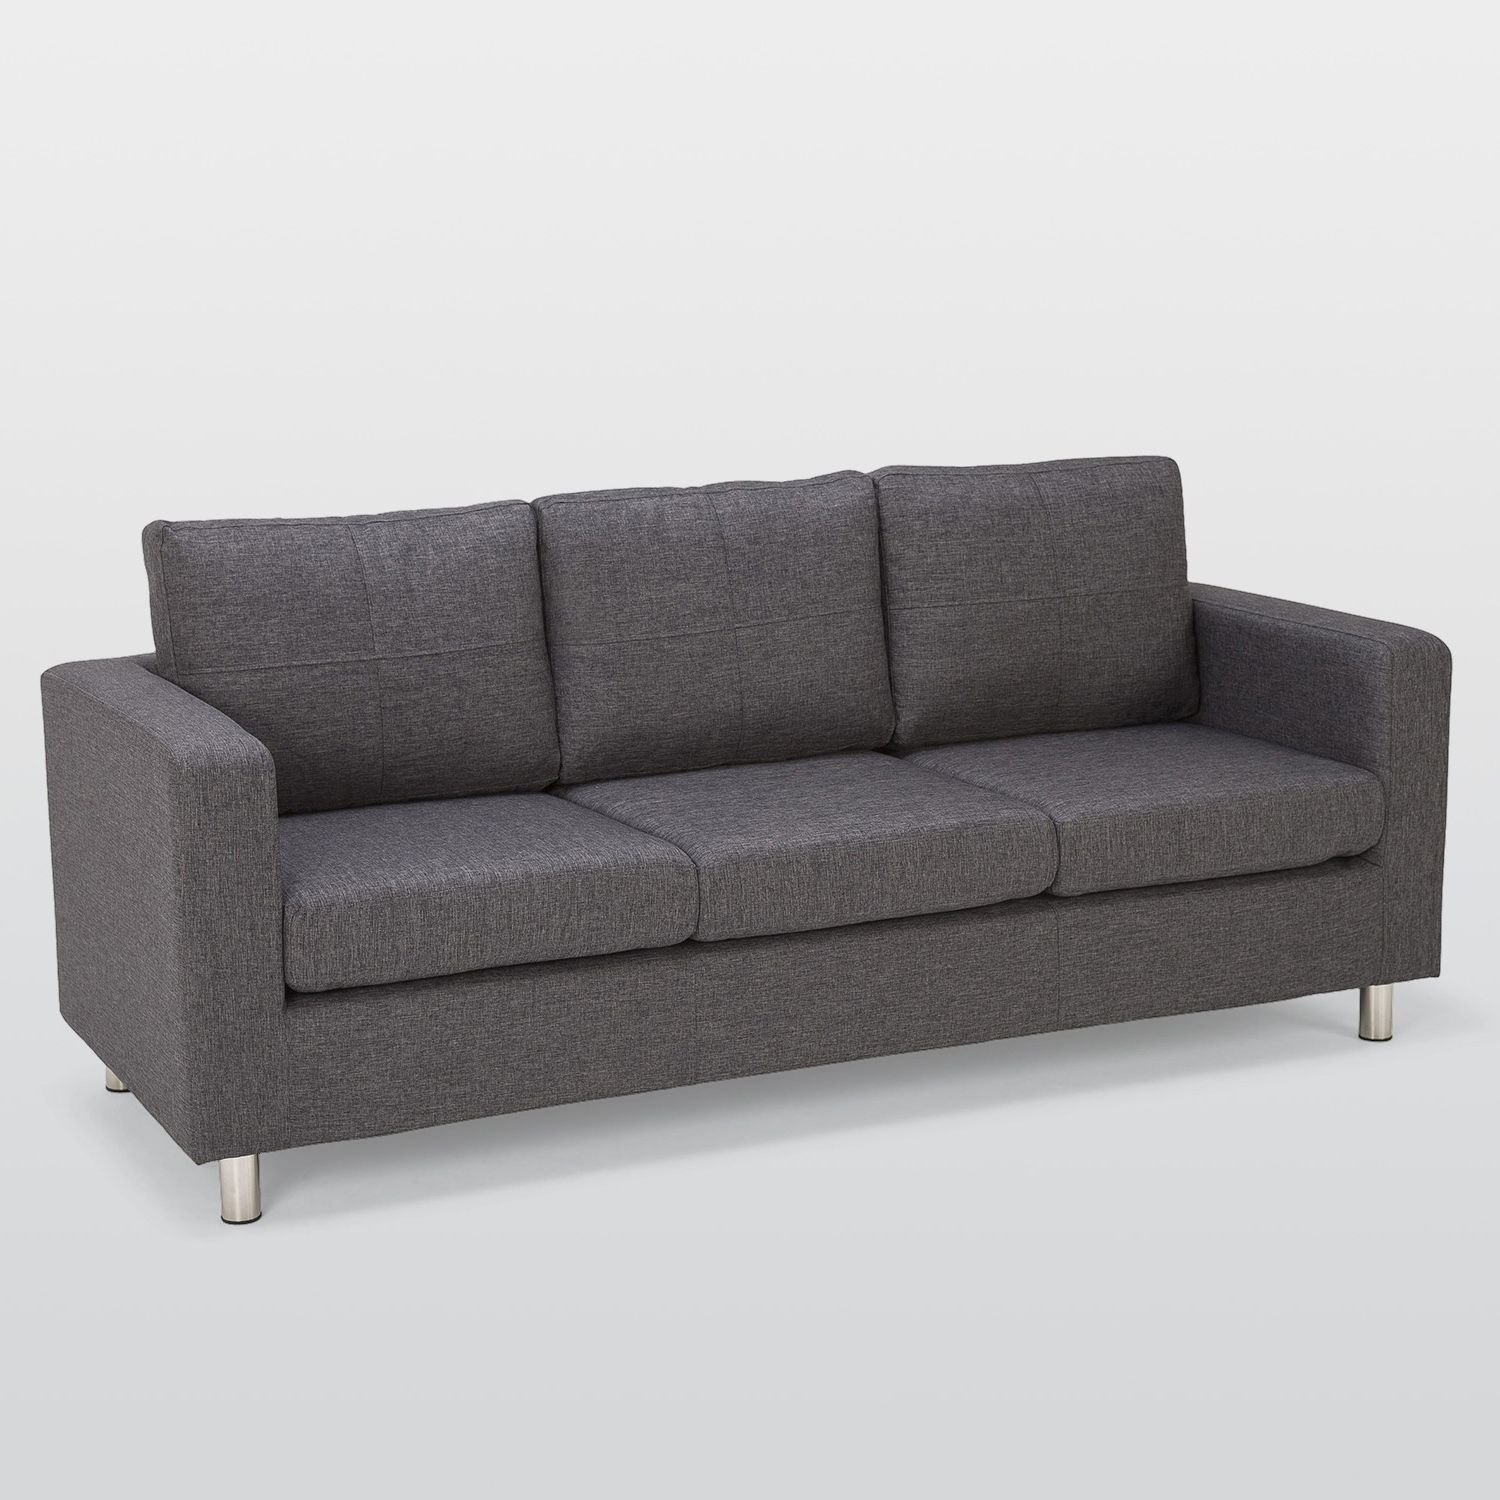 Oxford Fabric 3 Seater Sofa Next Day Delivery Oxford Fabric 3 Seater Sofa Sofa Next Sofa Seater Sofa